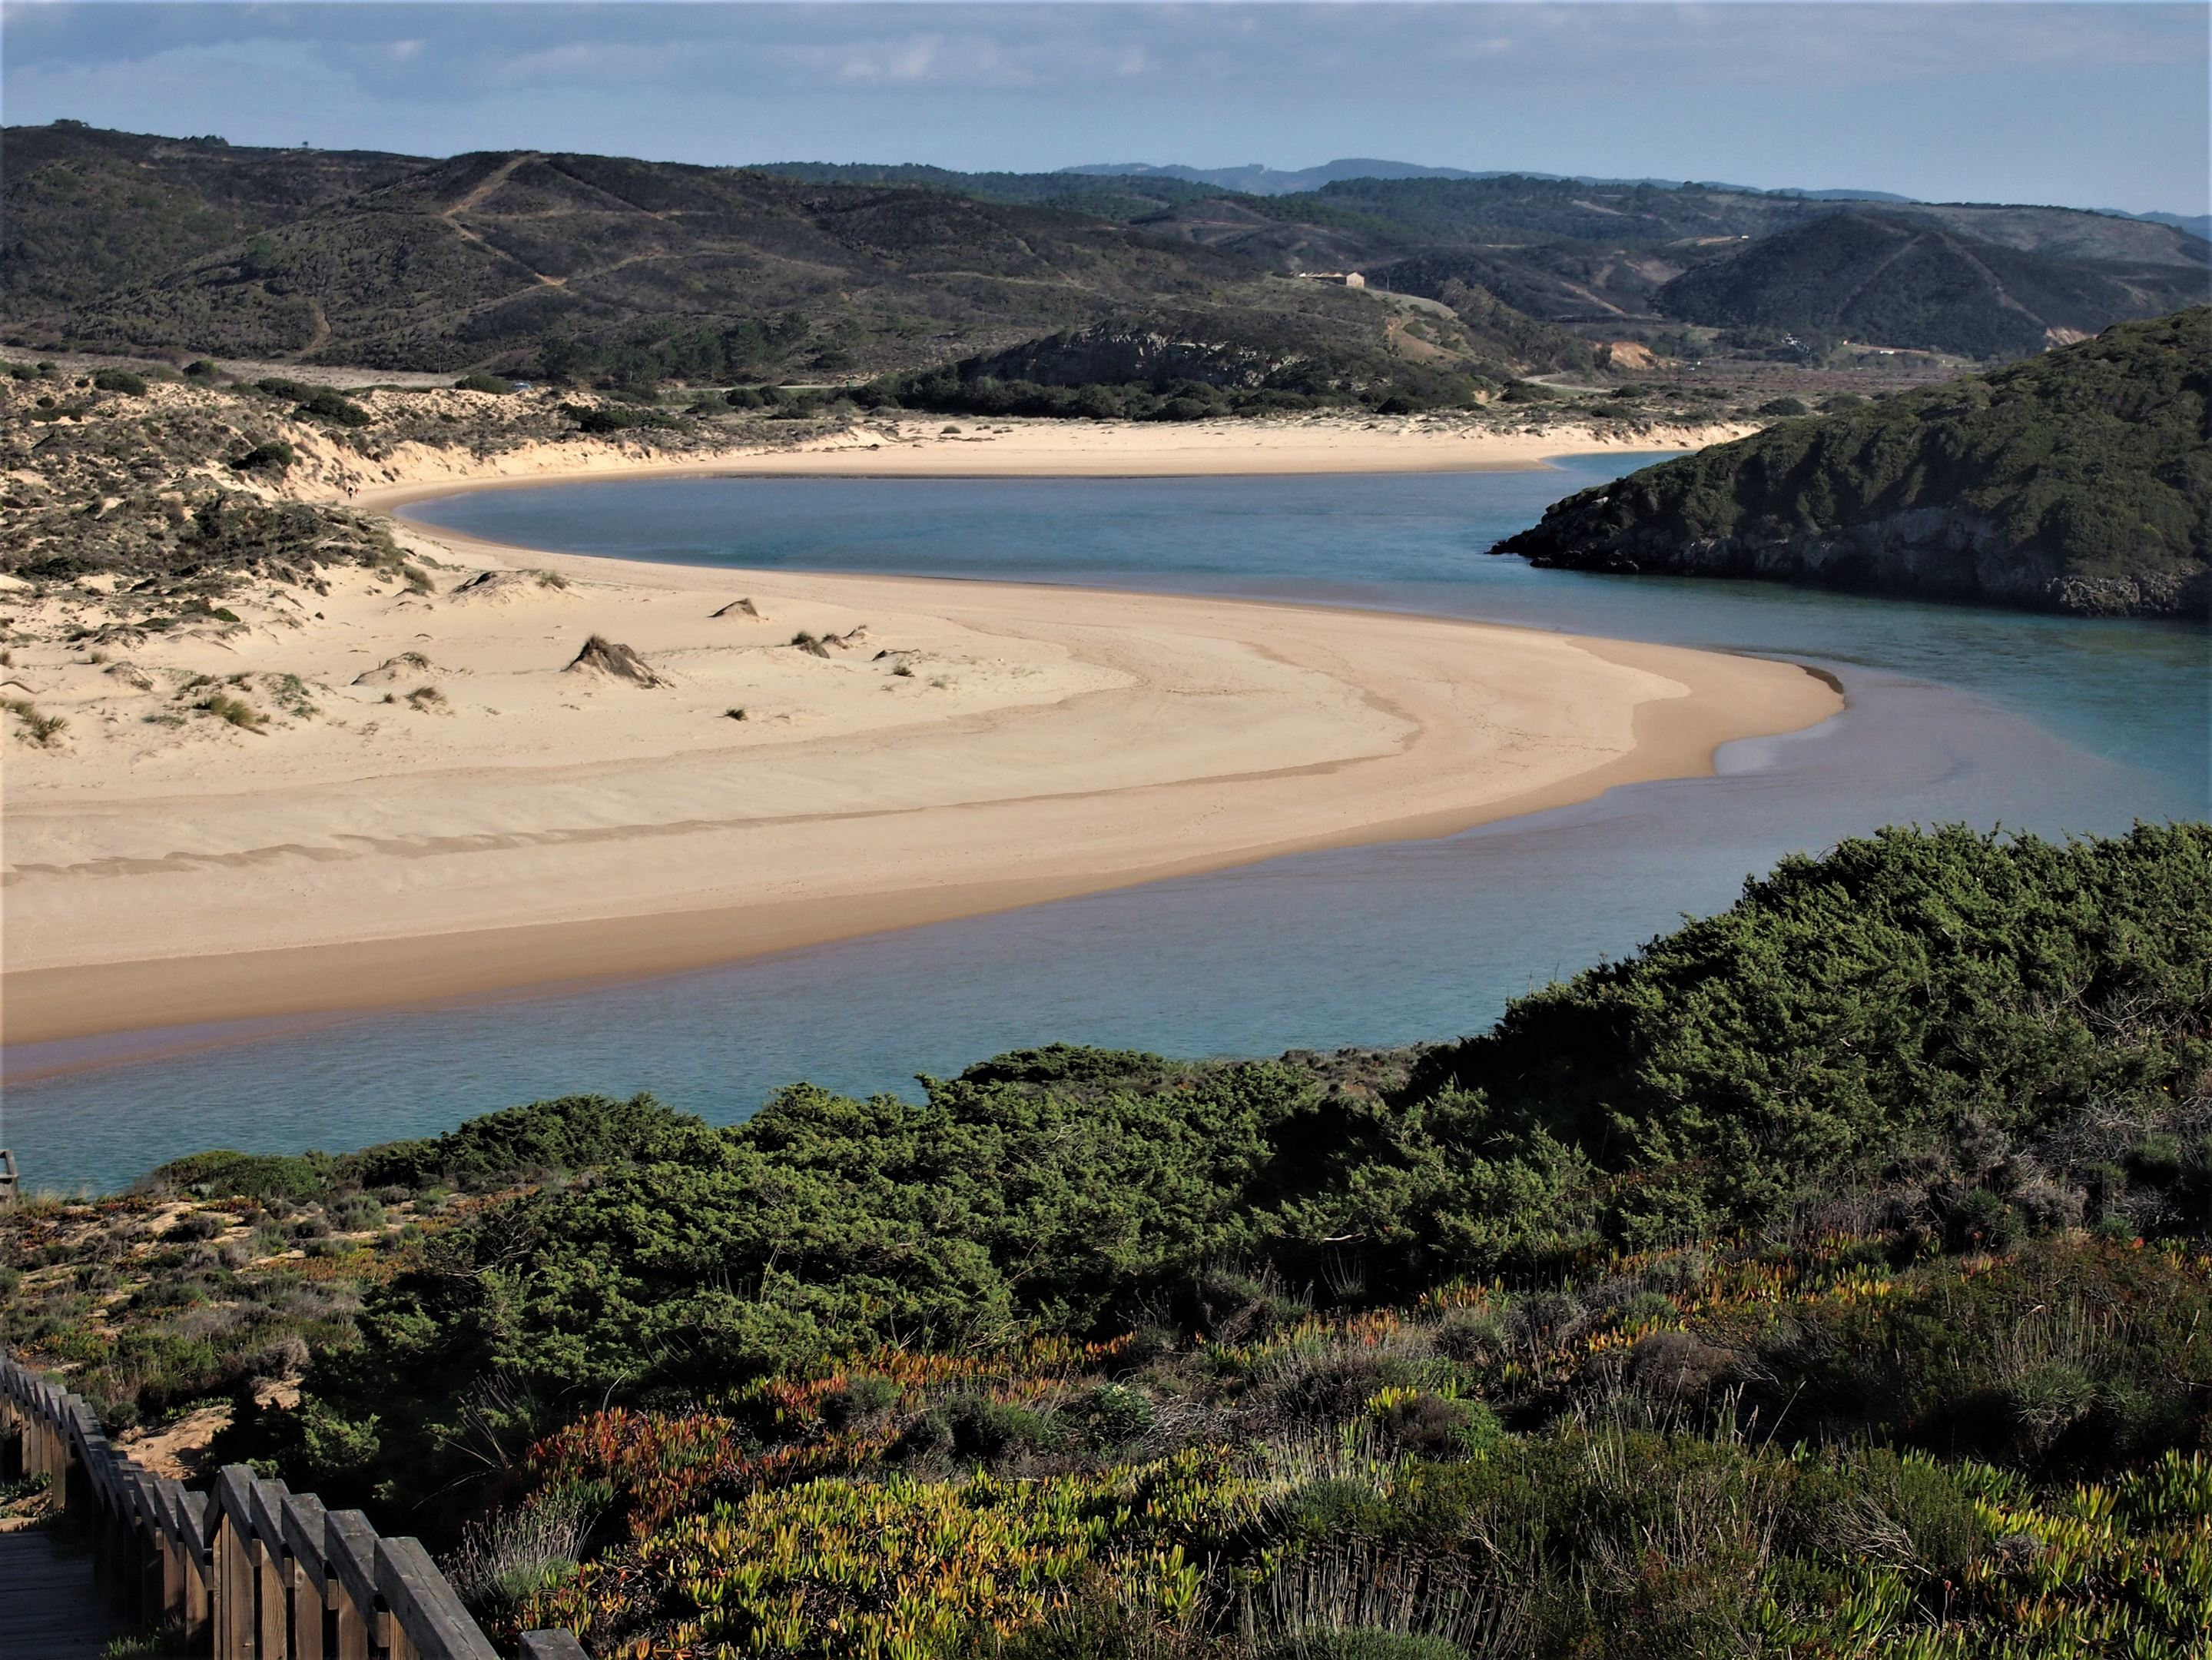 The Ribeira de Aljezur (Aljezur River) which flows alongside the Praia da Amoreira